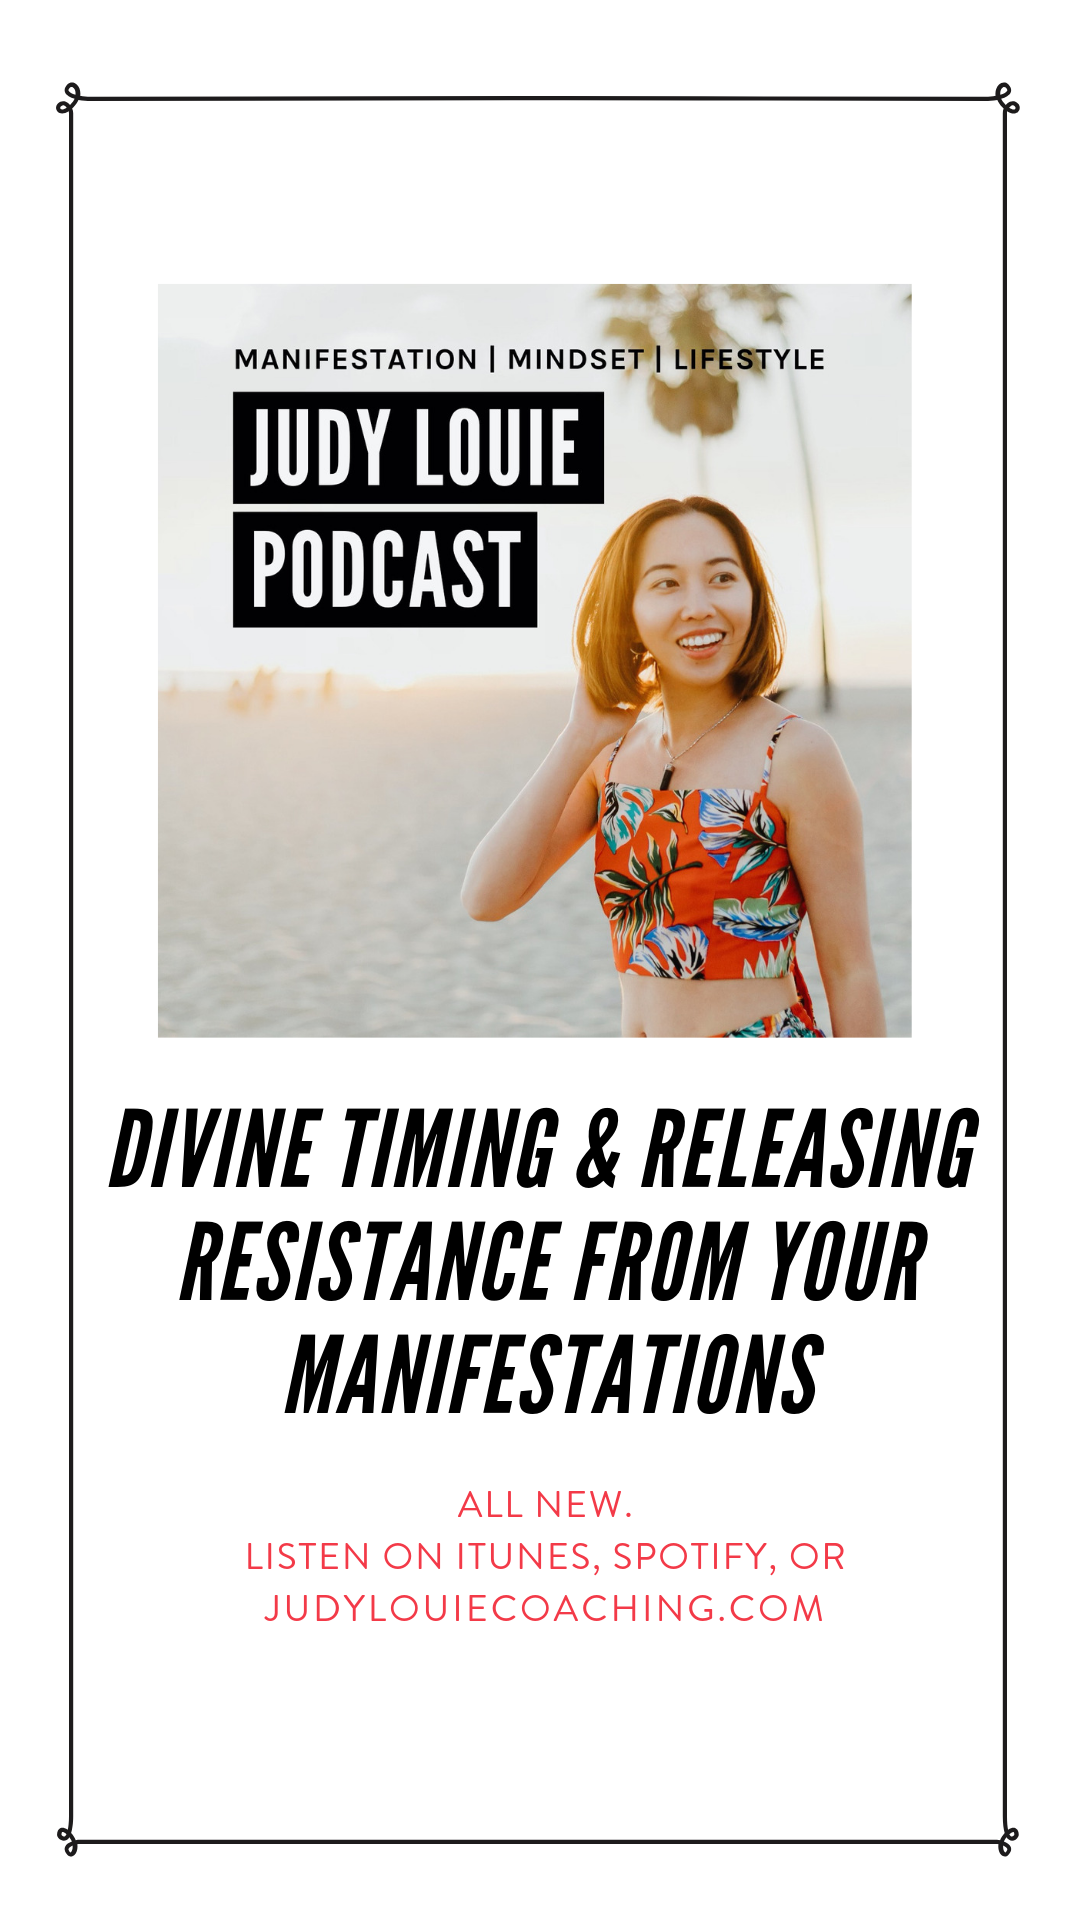 judy louie podcast - divine timing.png